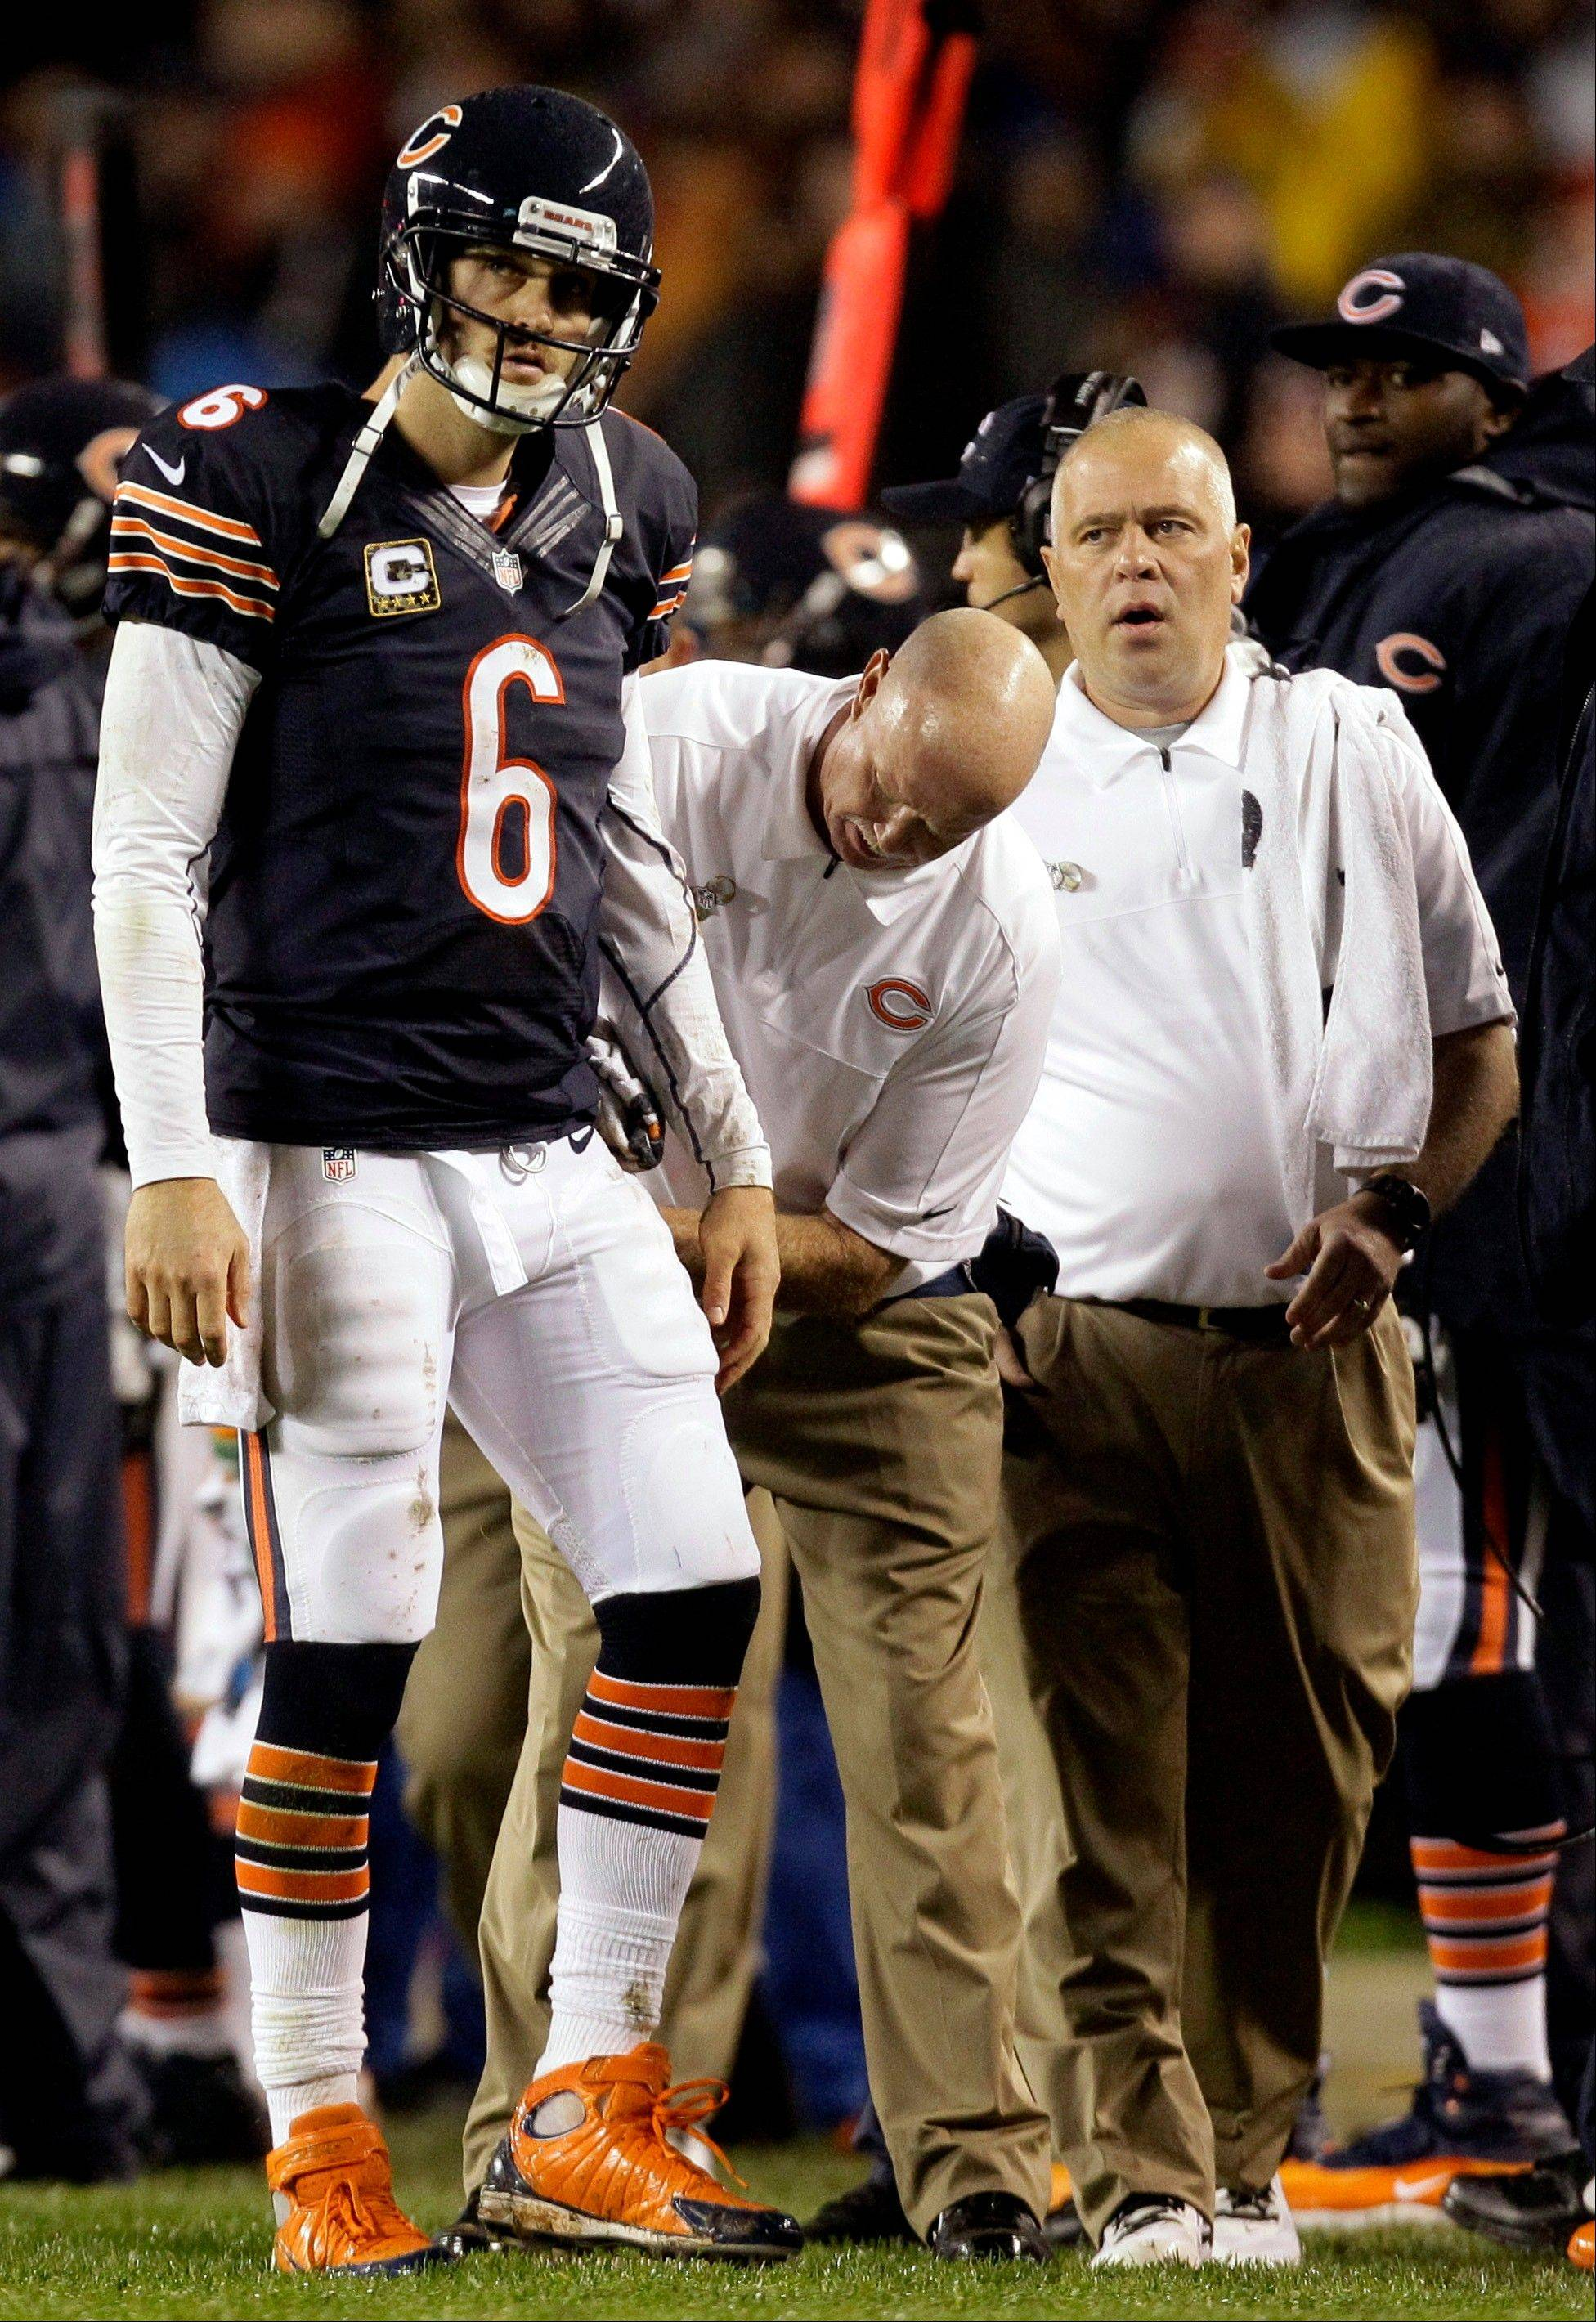 Trainers look at Bears QB Jay Cutler after Cutler took a late hit by Houston Texans linebacker Tim Dobbins. Cutler missed one game with a concussion but returned last week against the Vikings.